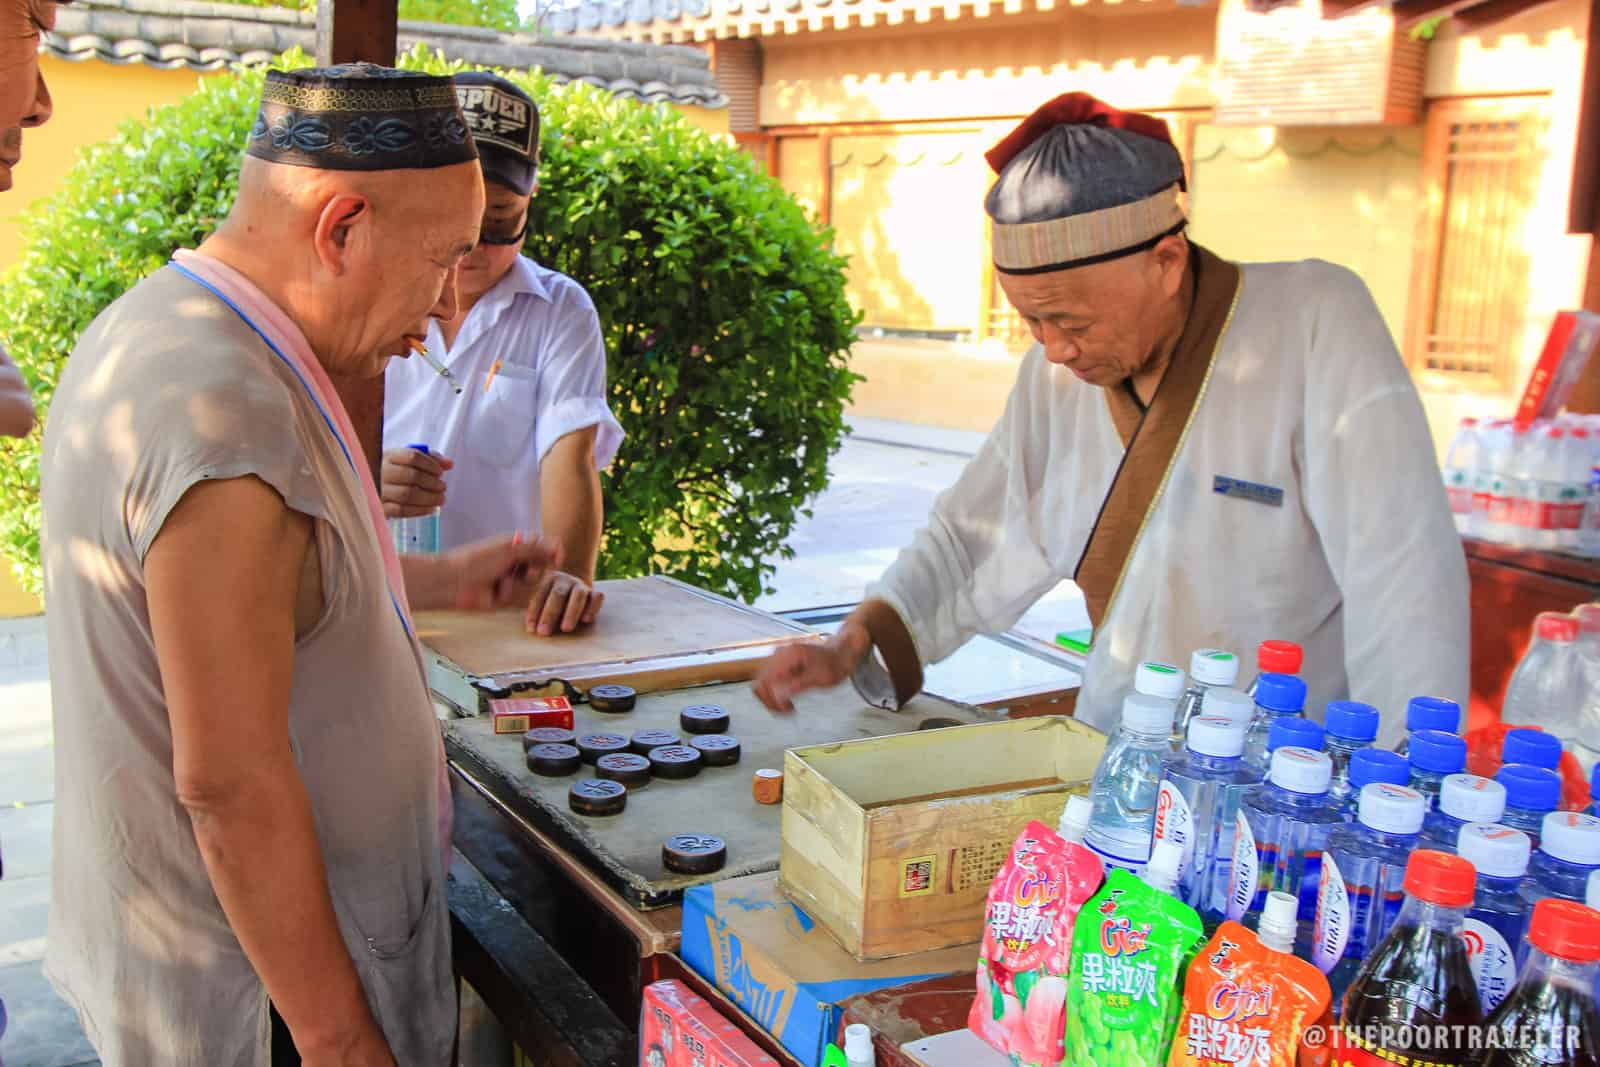 A stall vendor playing a board game.